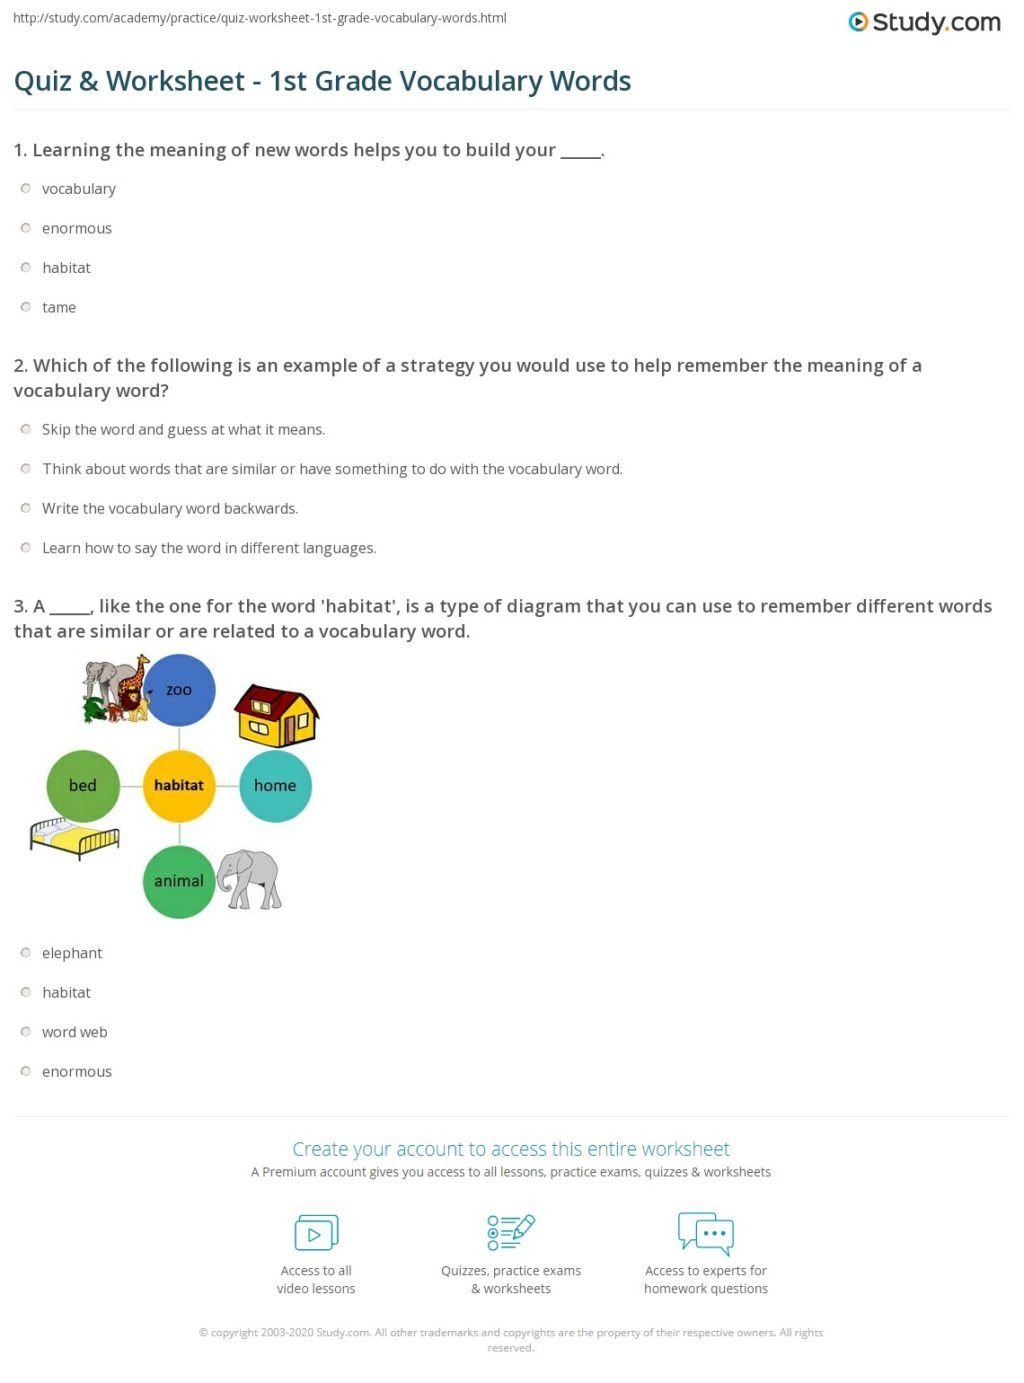 Vocabulary Worksheets for 1st Graders Math Worksheet Quiz Worksheet 1stade Vocabulary Words